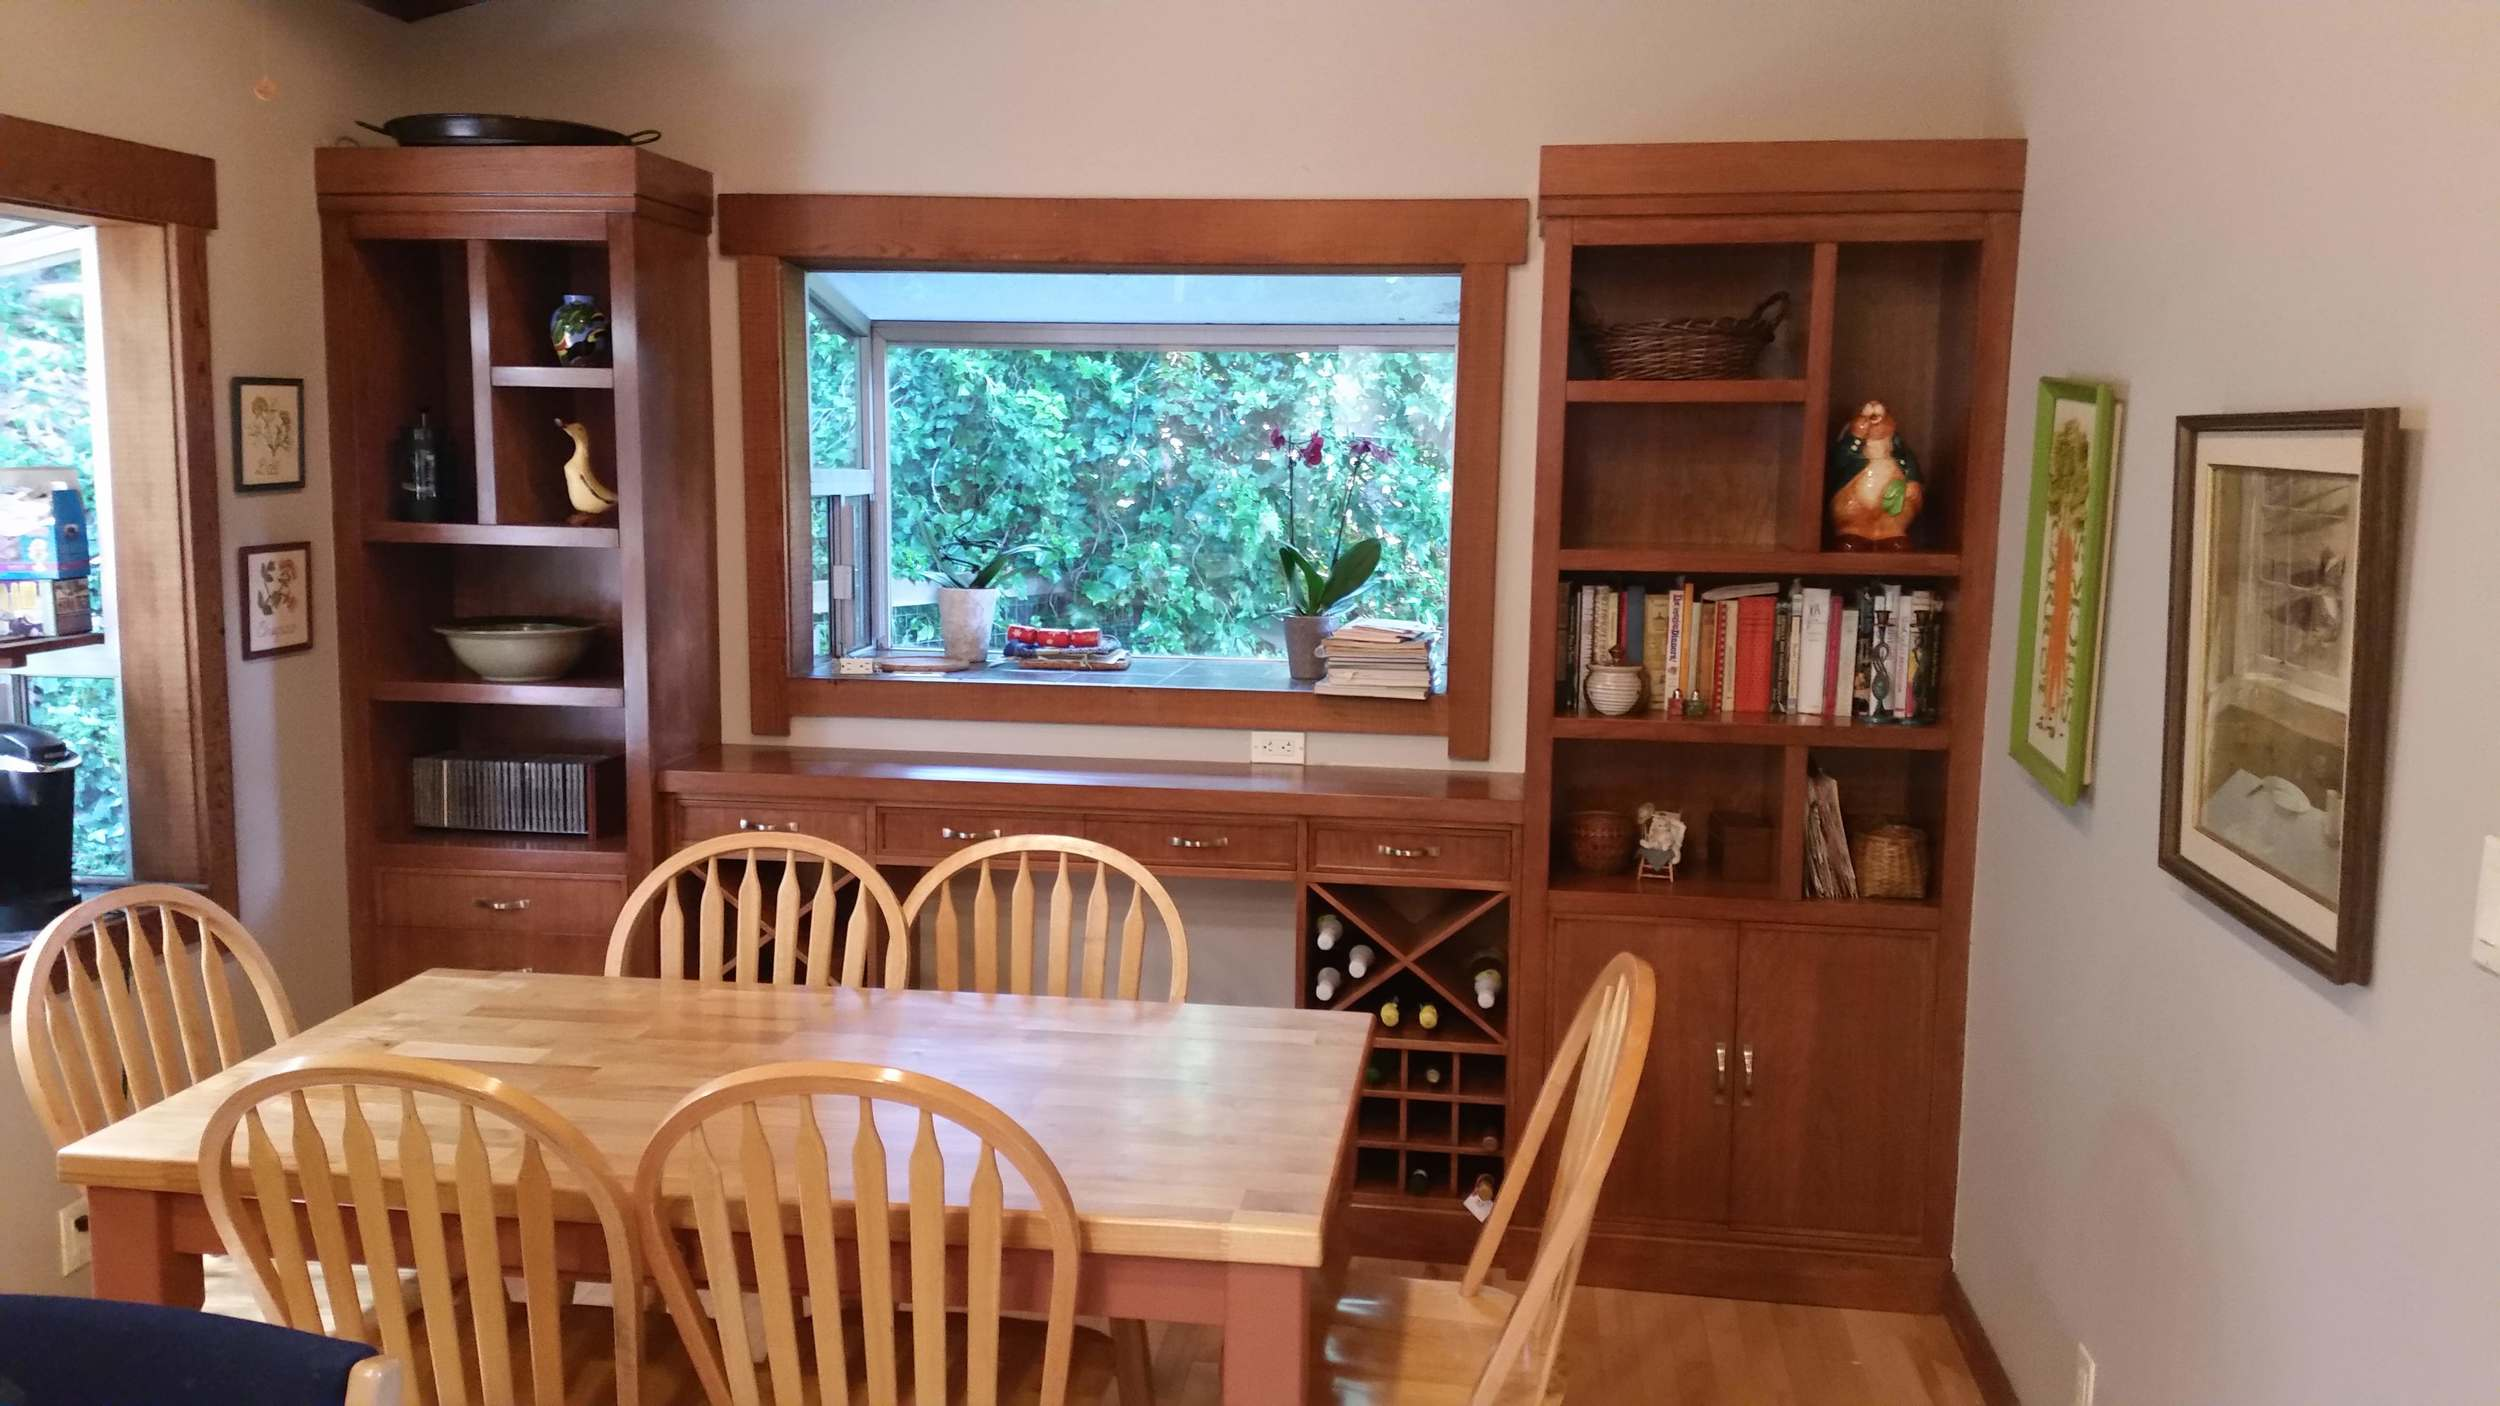 Completed cabinets in Cherry. The kitchen table was also refinished by Geoff's Woodworking.